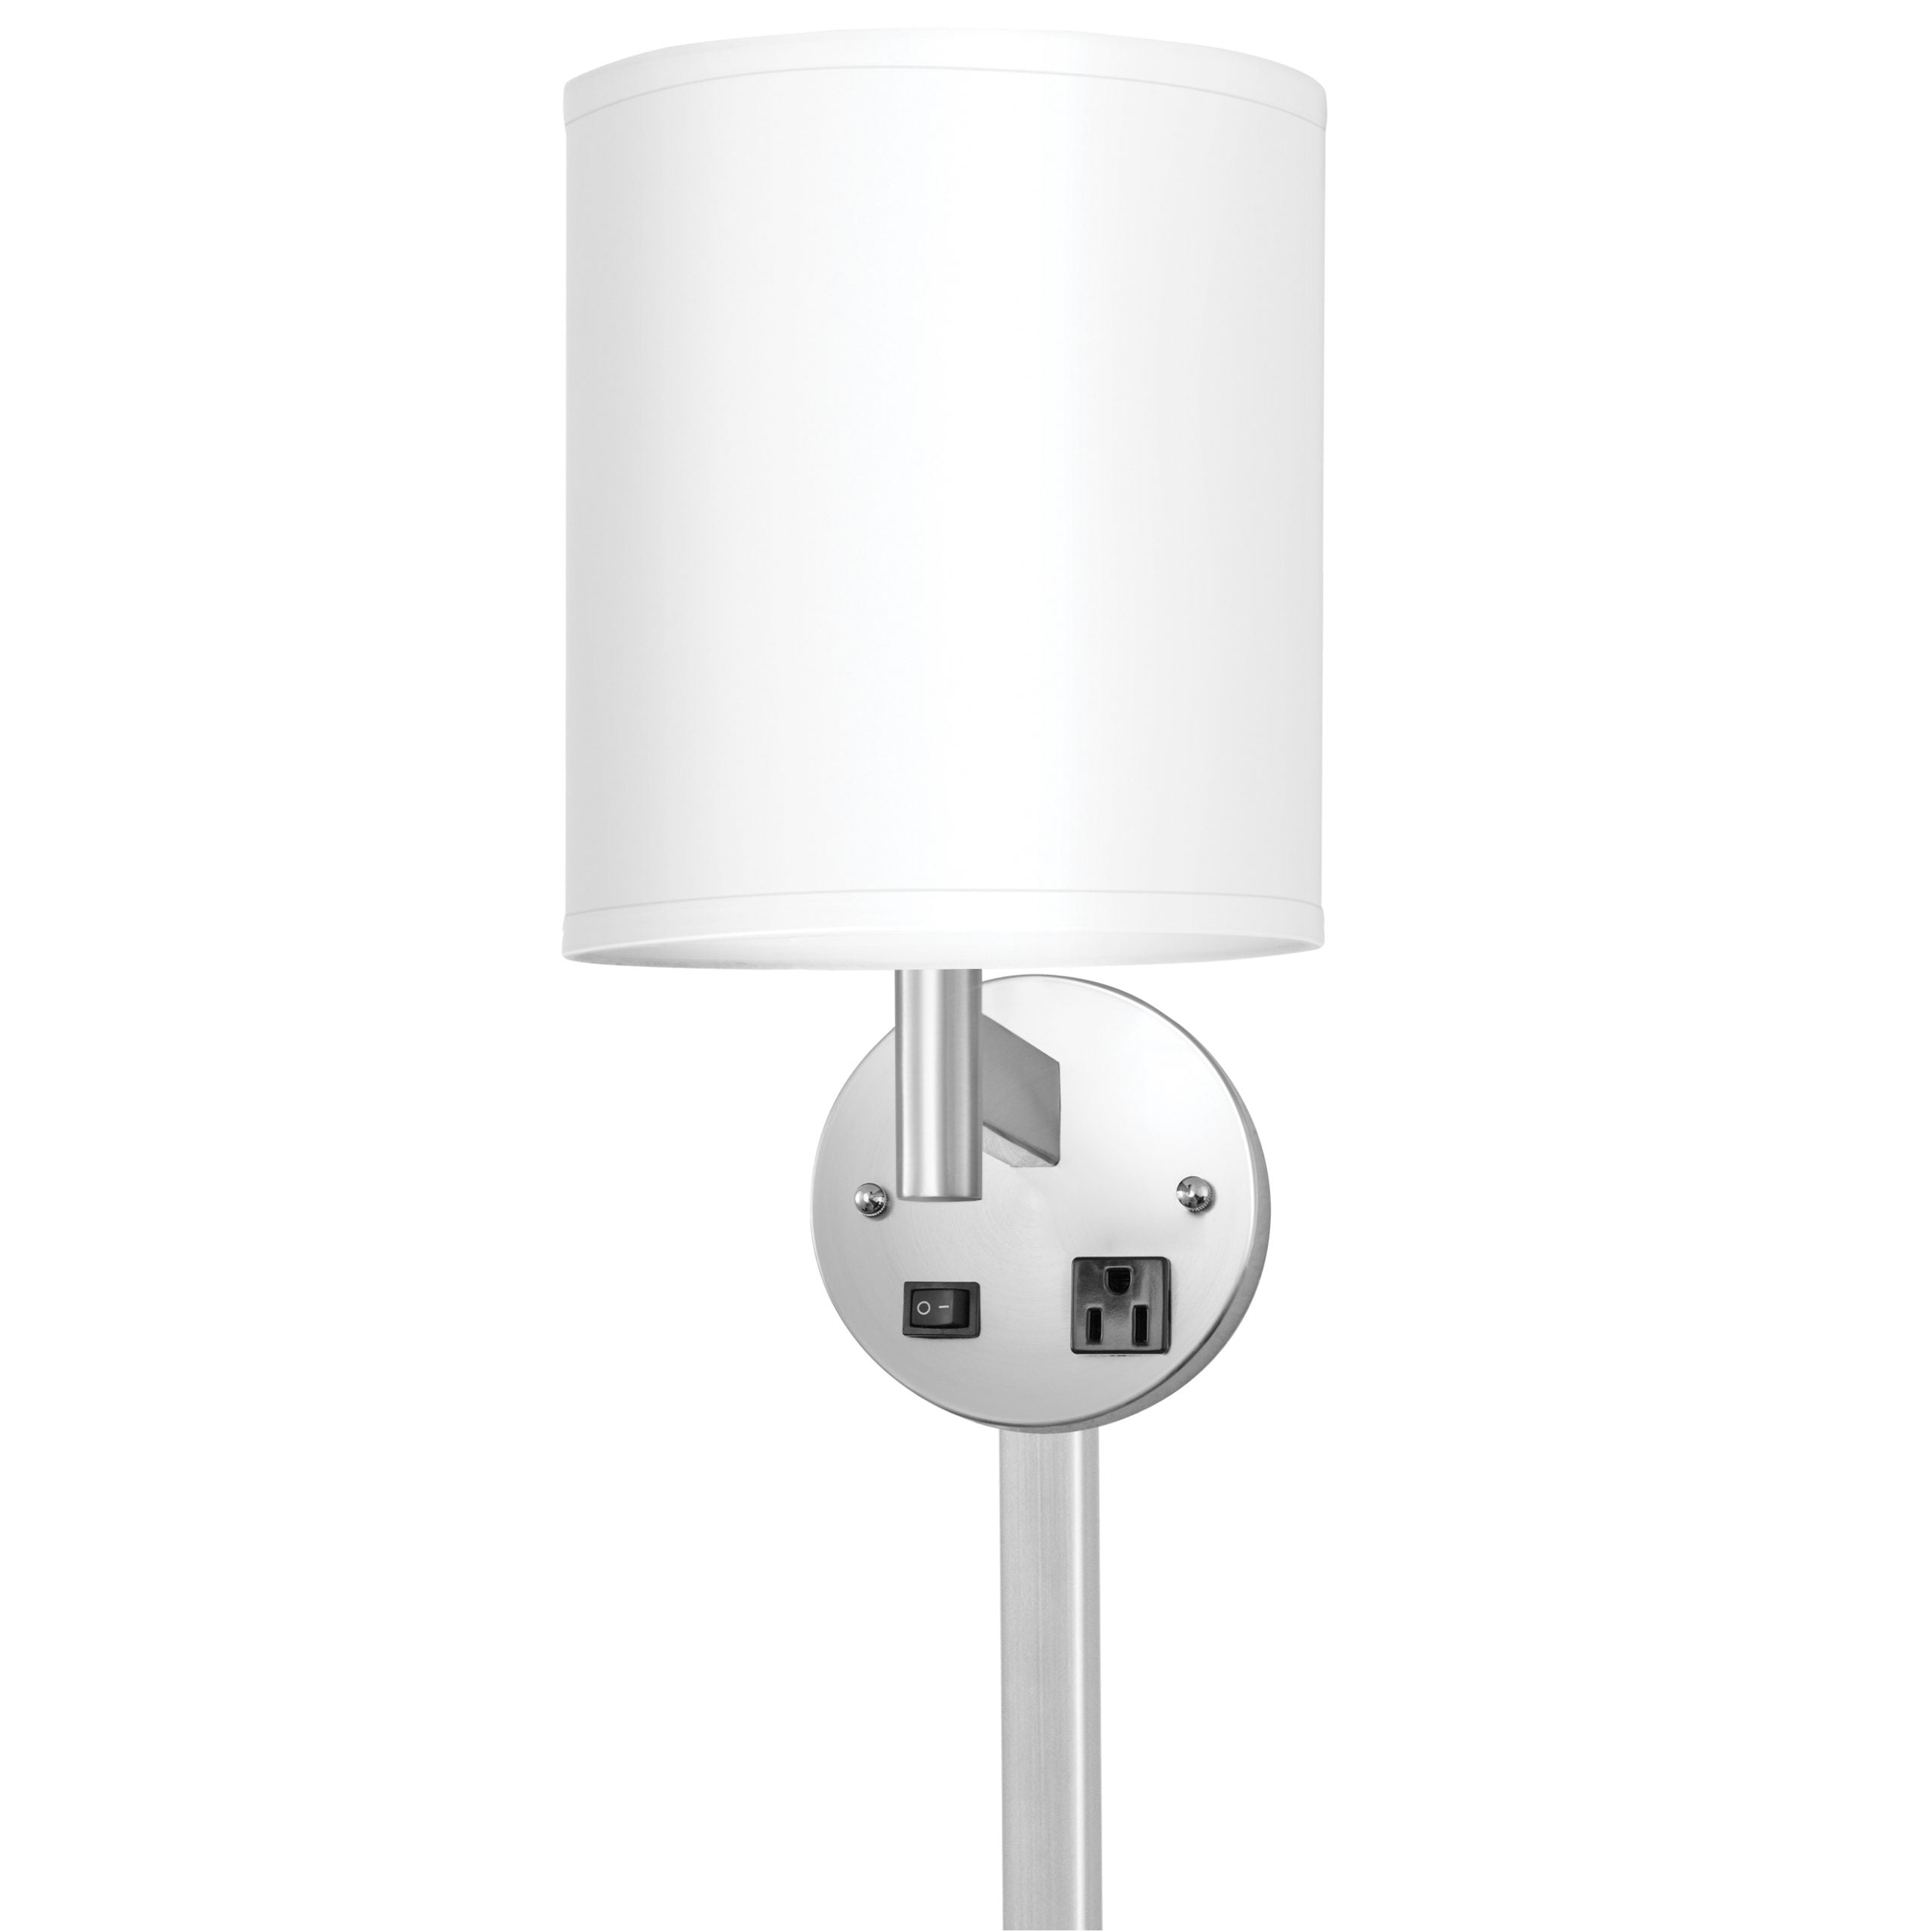 Corbel Single Wall Lamp with 1 Outlet